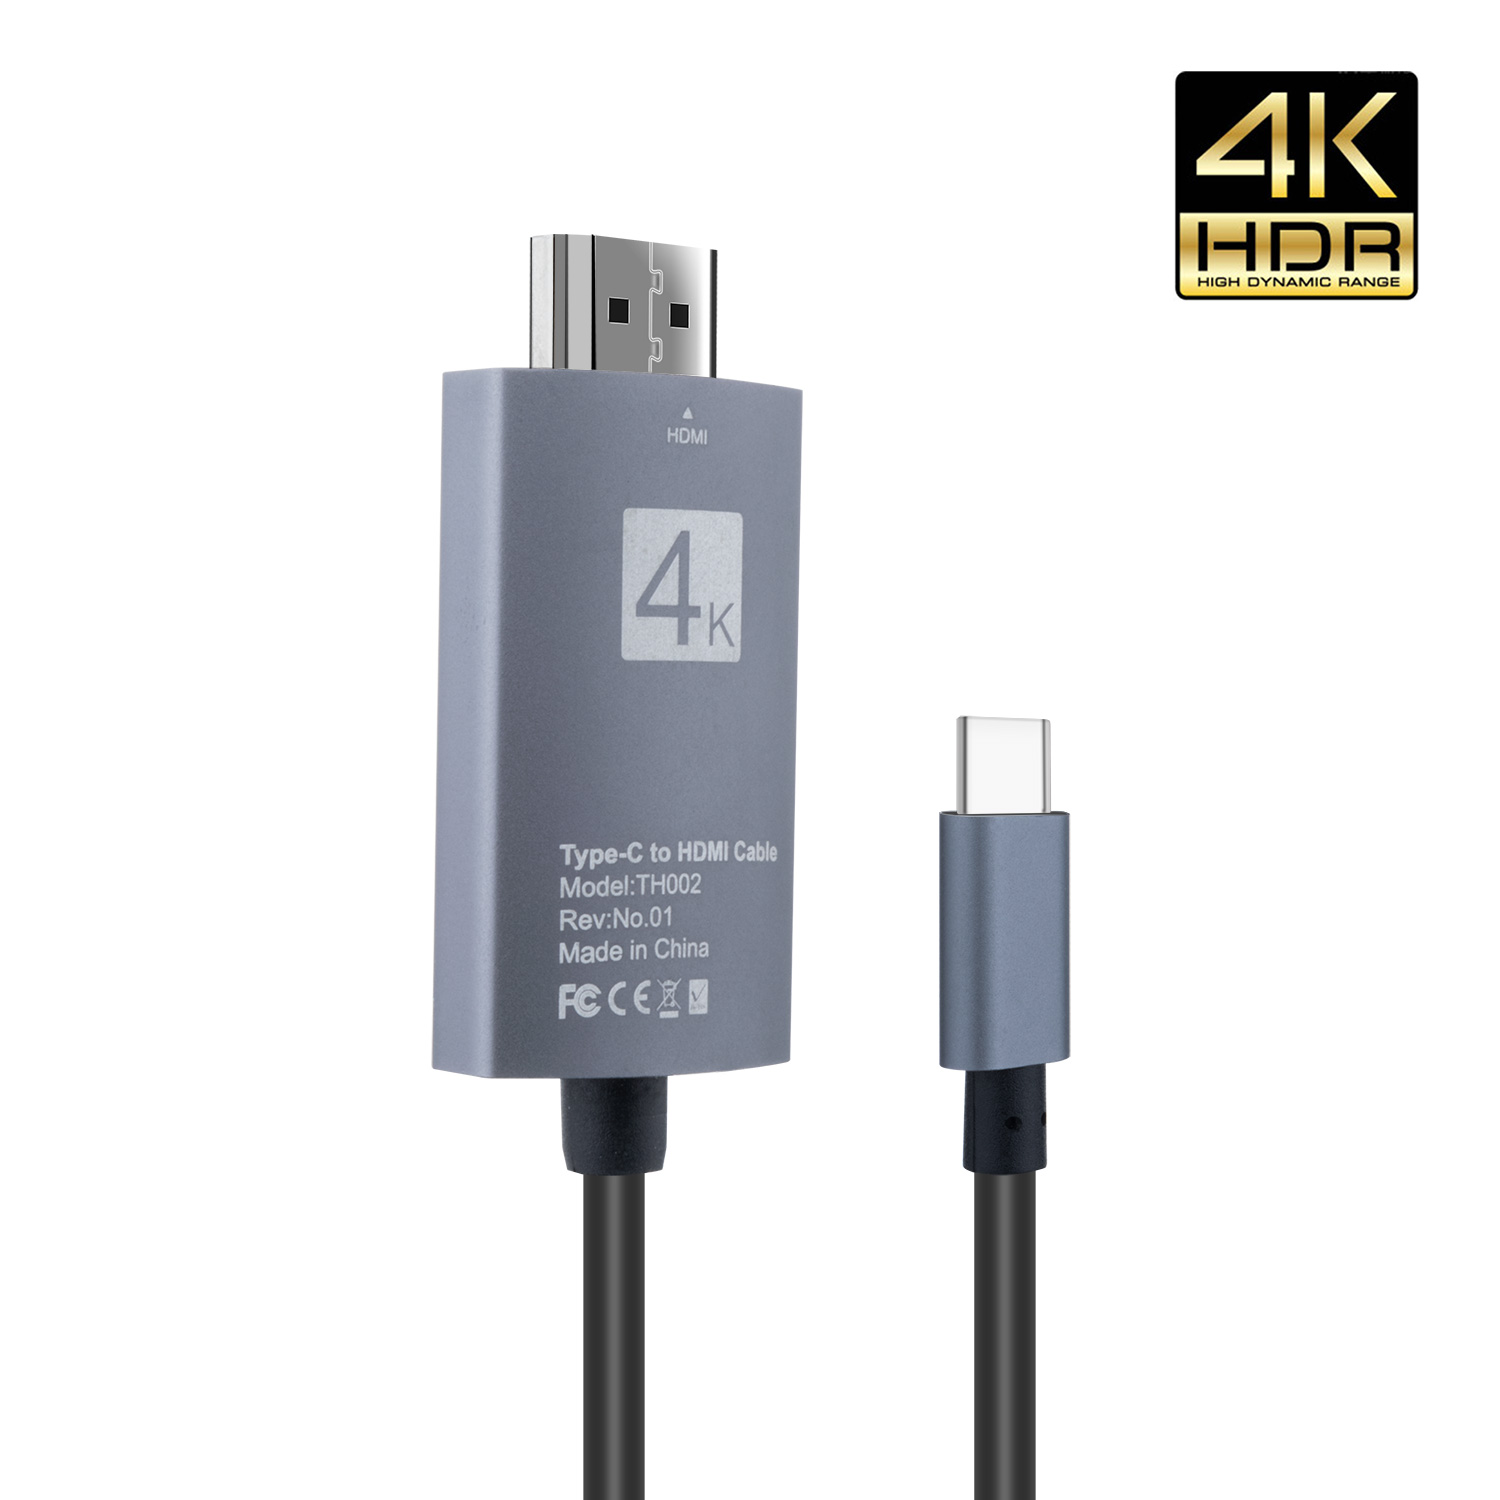 Surface Book 2 USB C to HDMI Cable Adapter,USB Type-C to HDMI 4K Cable for MacBook Pro 2018//2017 Samsung Galaxy S9//S8 Dell XPS 13//15 Pixelbook More